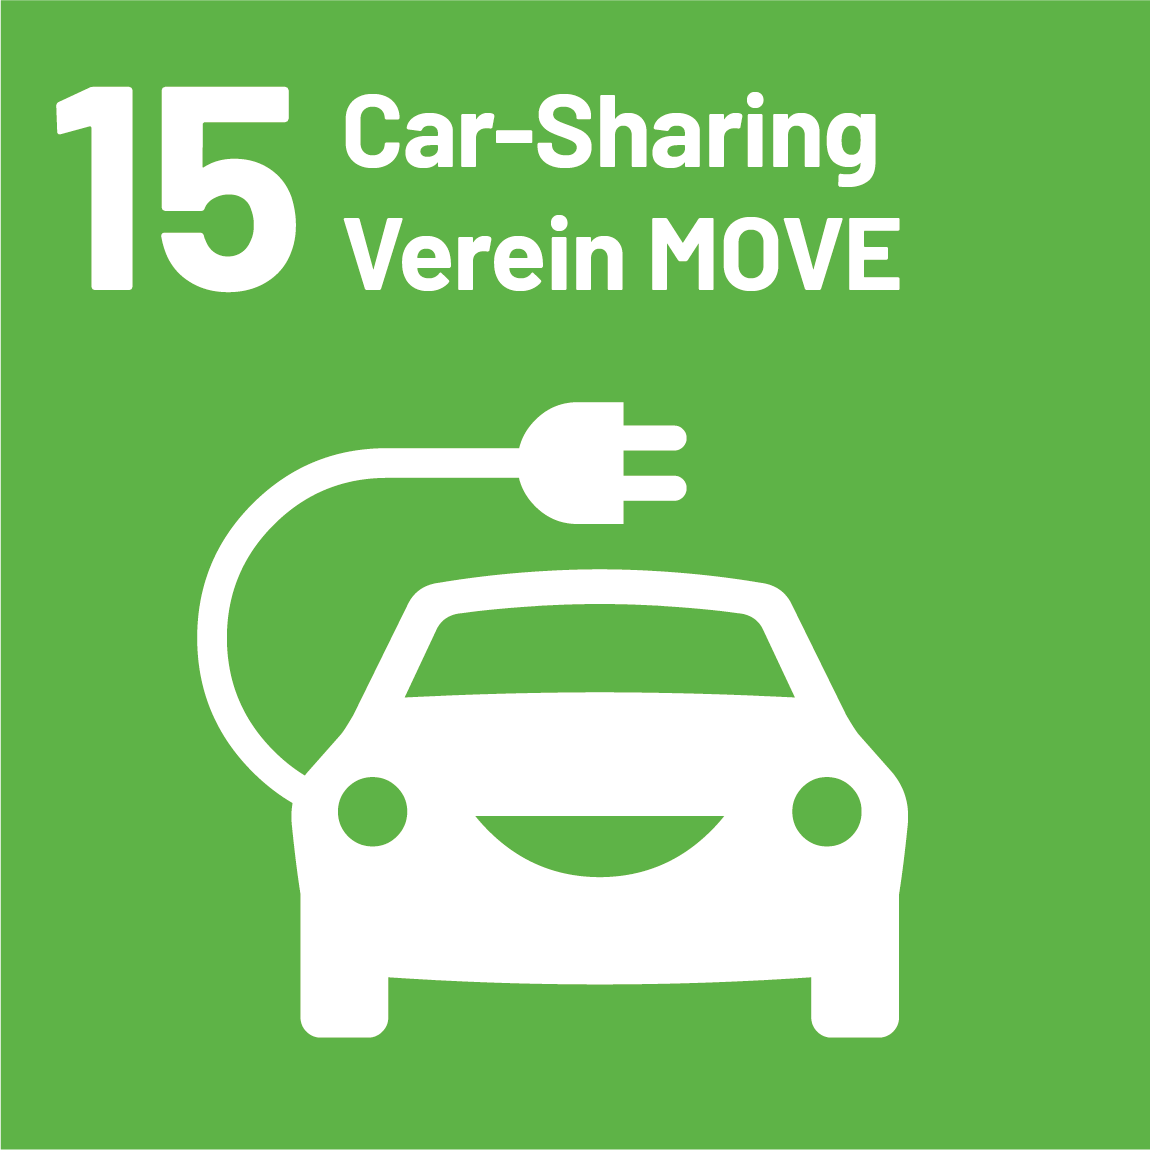 car-sharing-verein-move.png